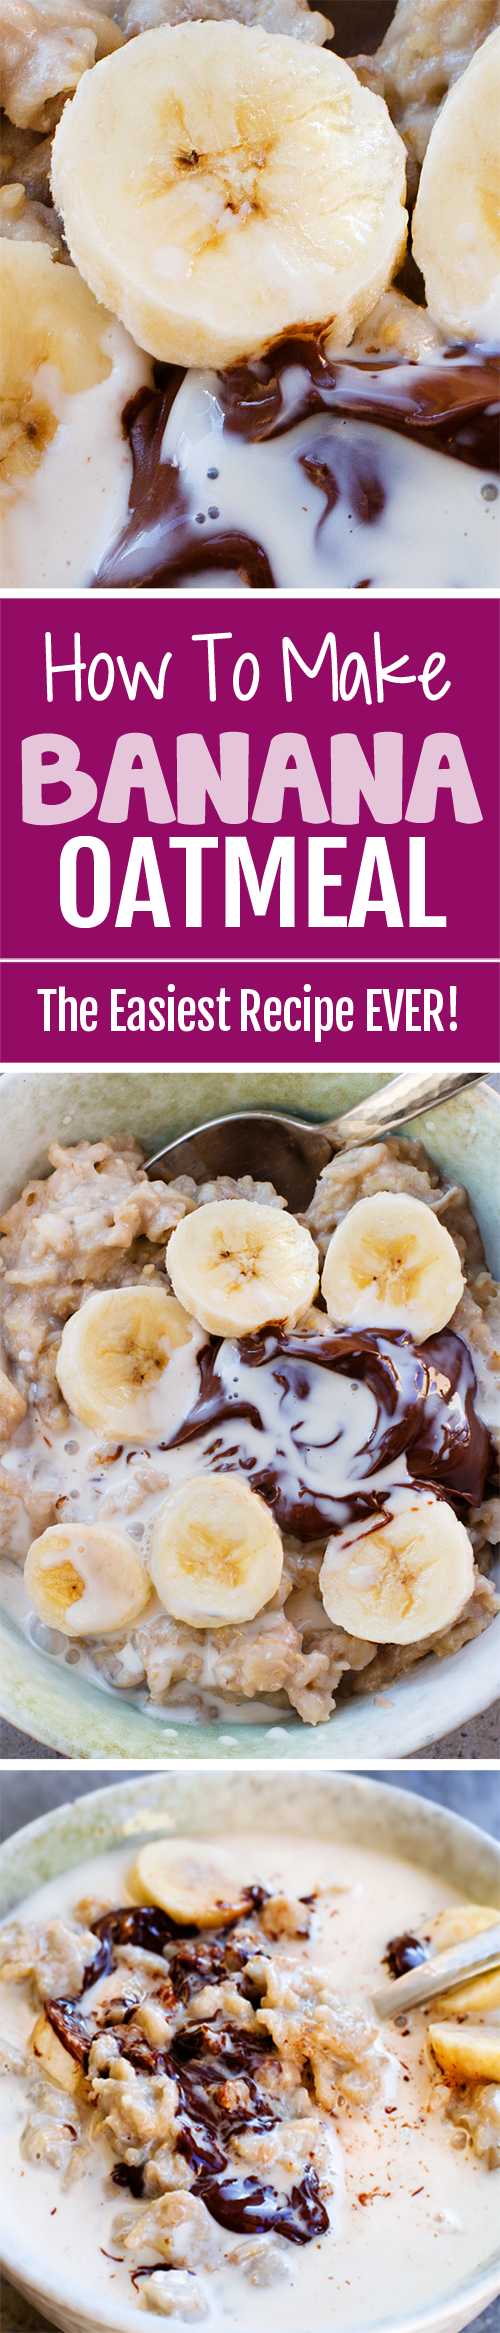 How To Make CREAMY Banana Oatmeal